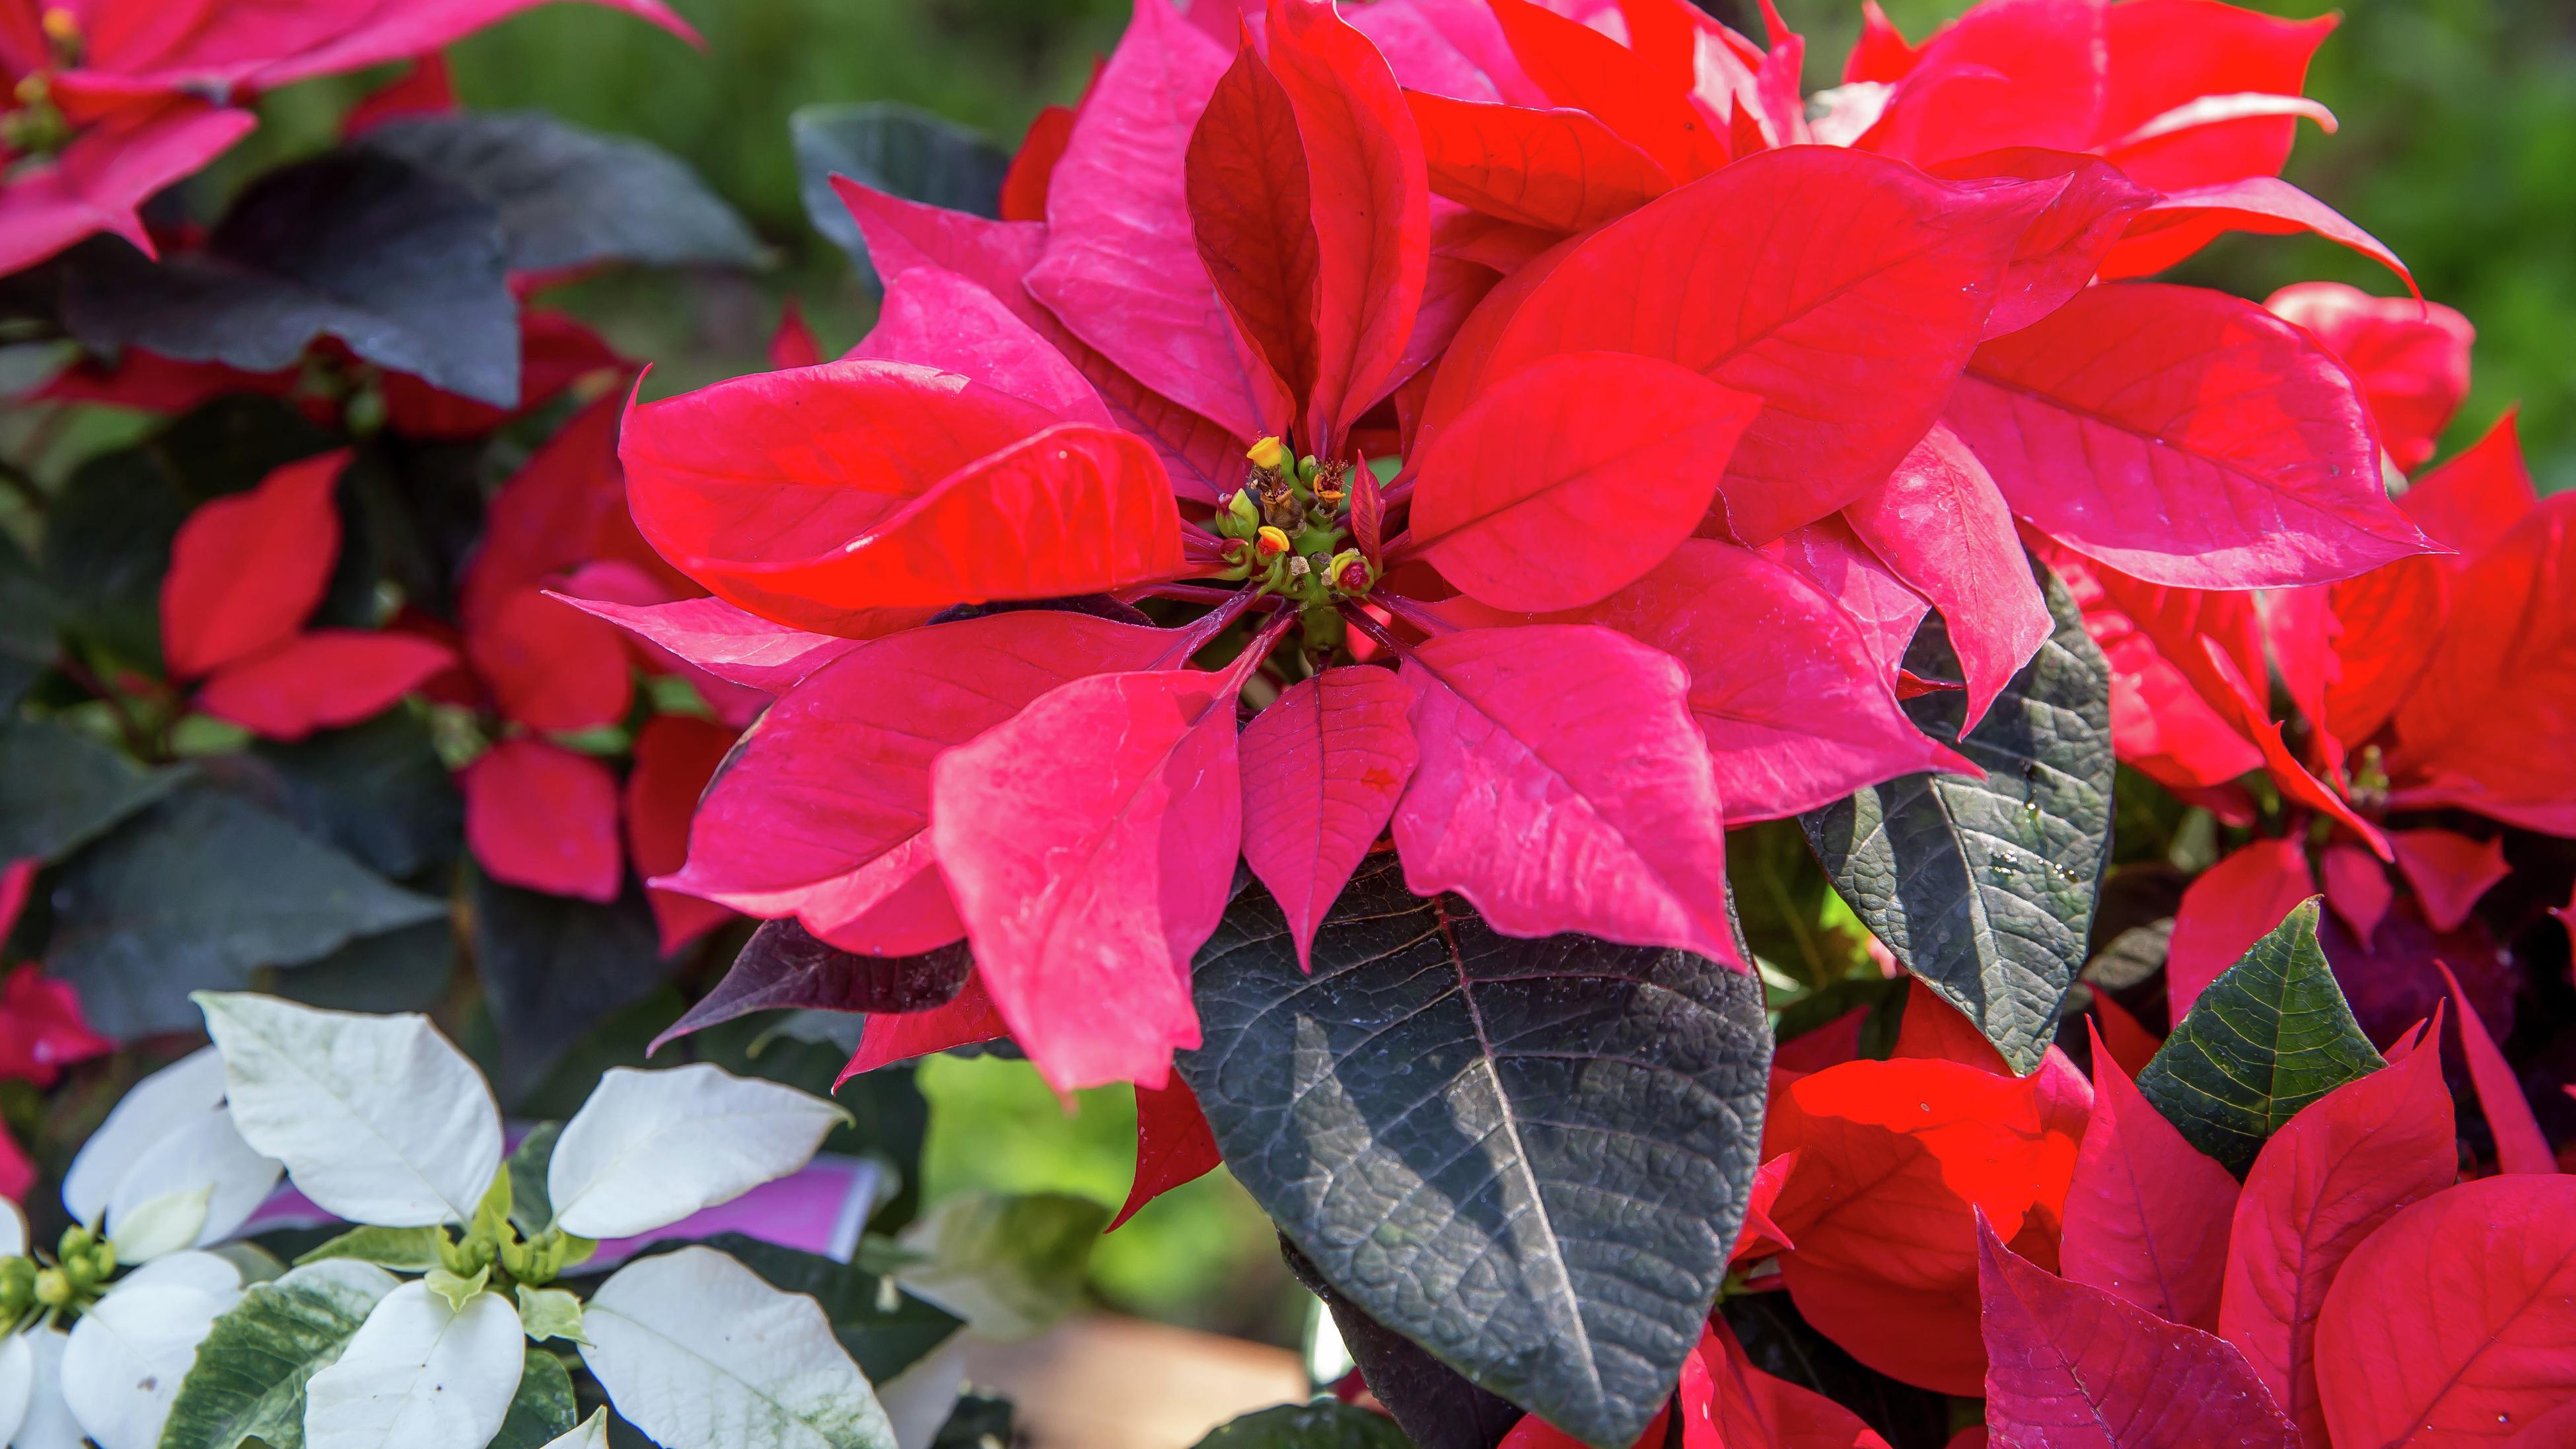 Red and white potted poinsettias.